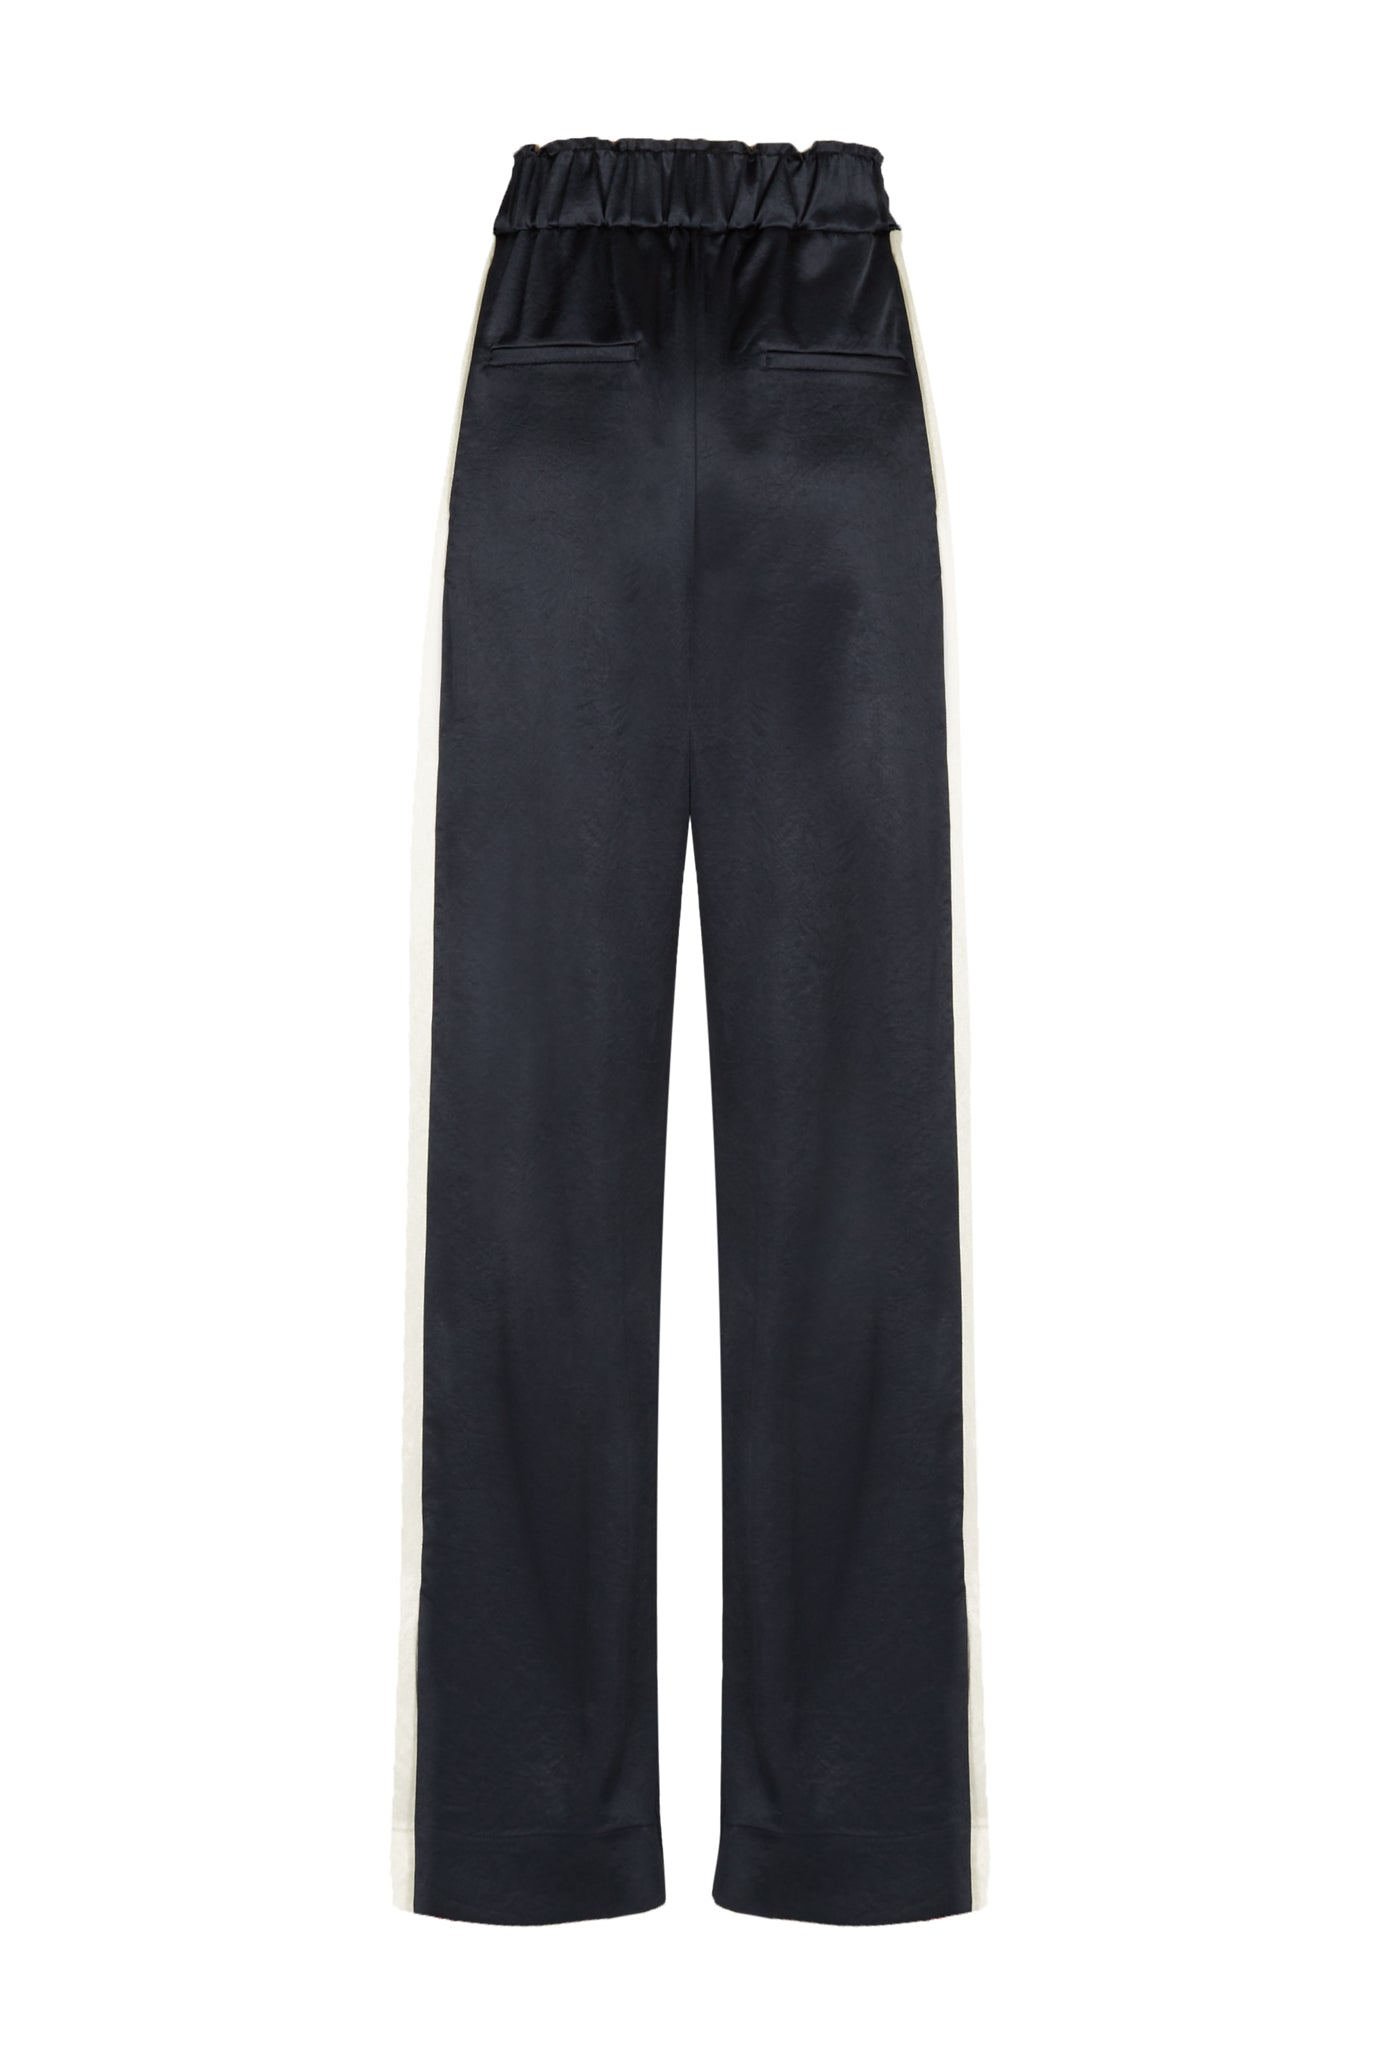 Alice straight leg trouser navy natural fabric Serena Bute